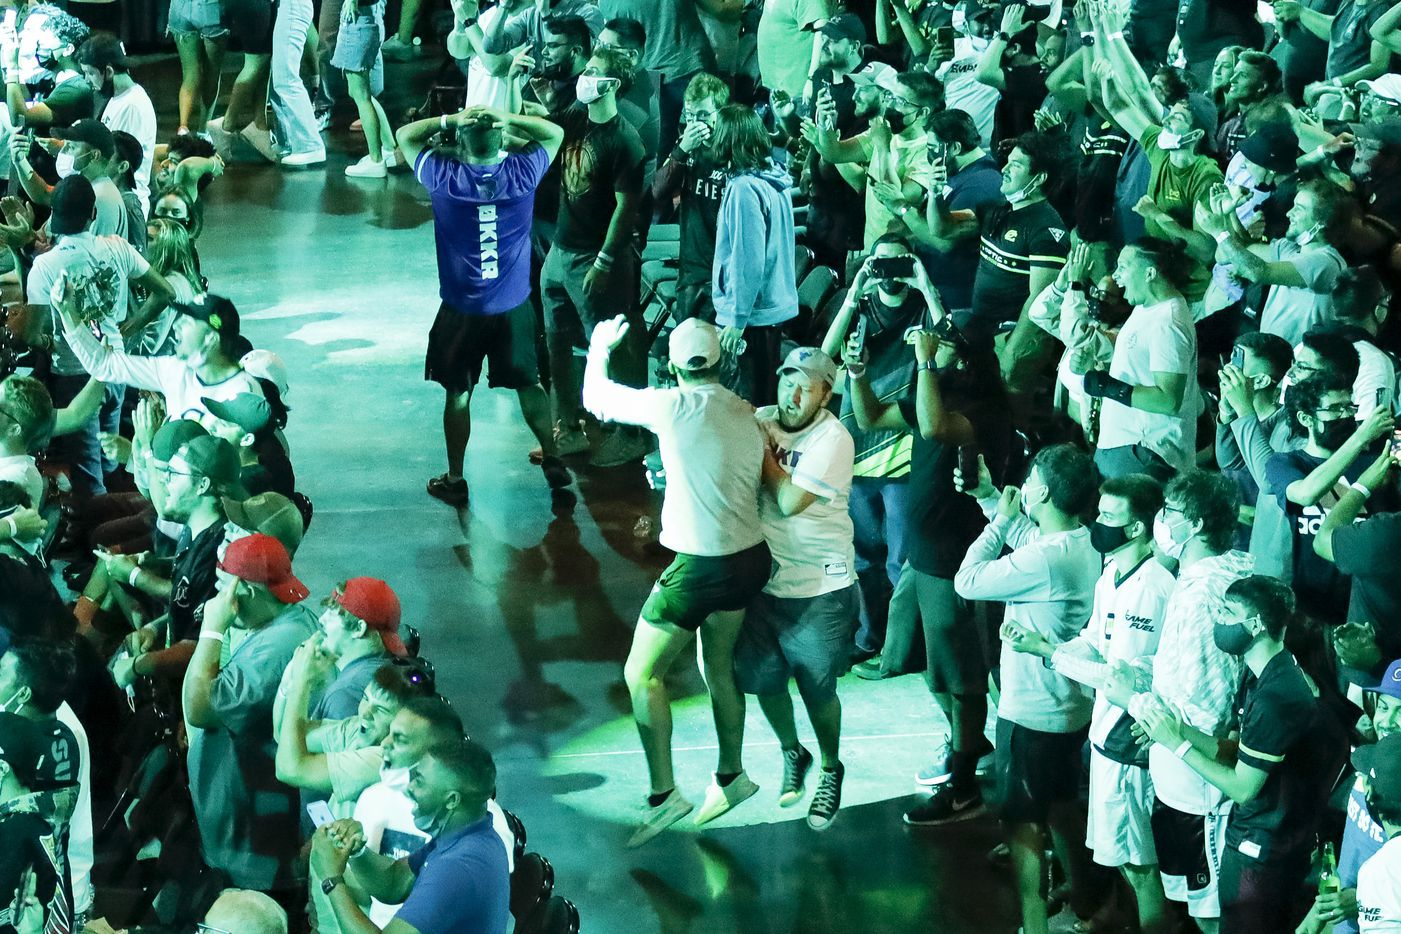 Fans react after the Seattle Surge defeated the Atlanta FaZe during the Call of Duty League Major V tournament at Esports Stadium Arlington on Saturday, July 31, 2021, in Arlington. (Elias Valverde II/The Dallas Morning News)